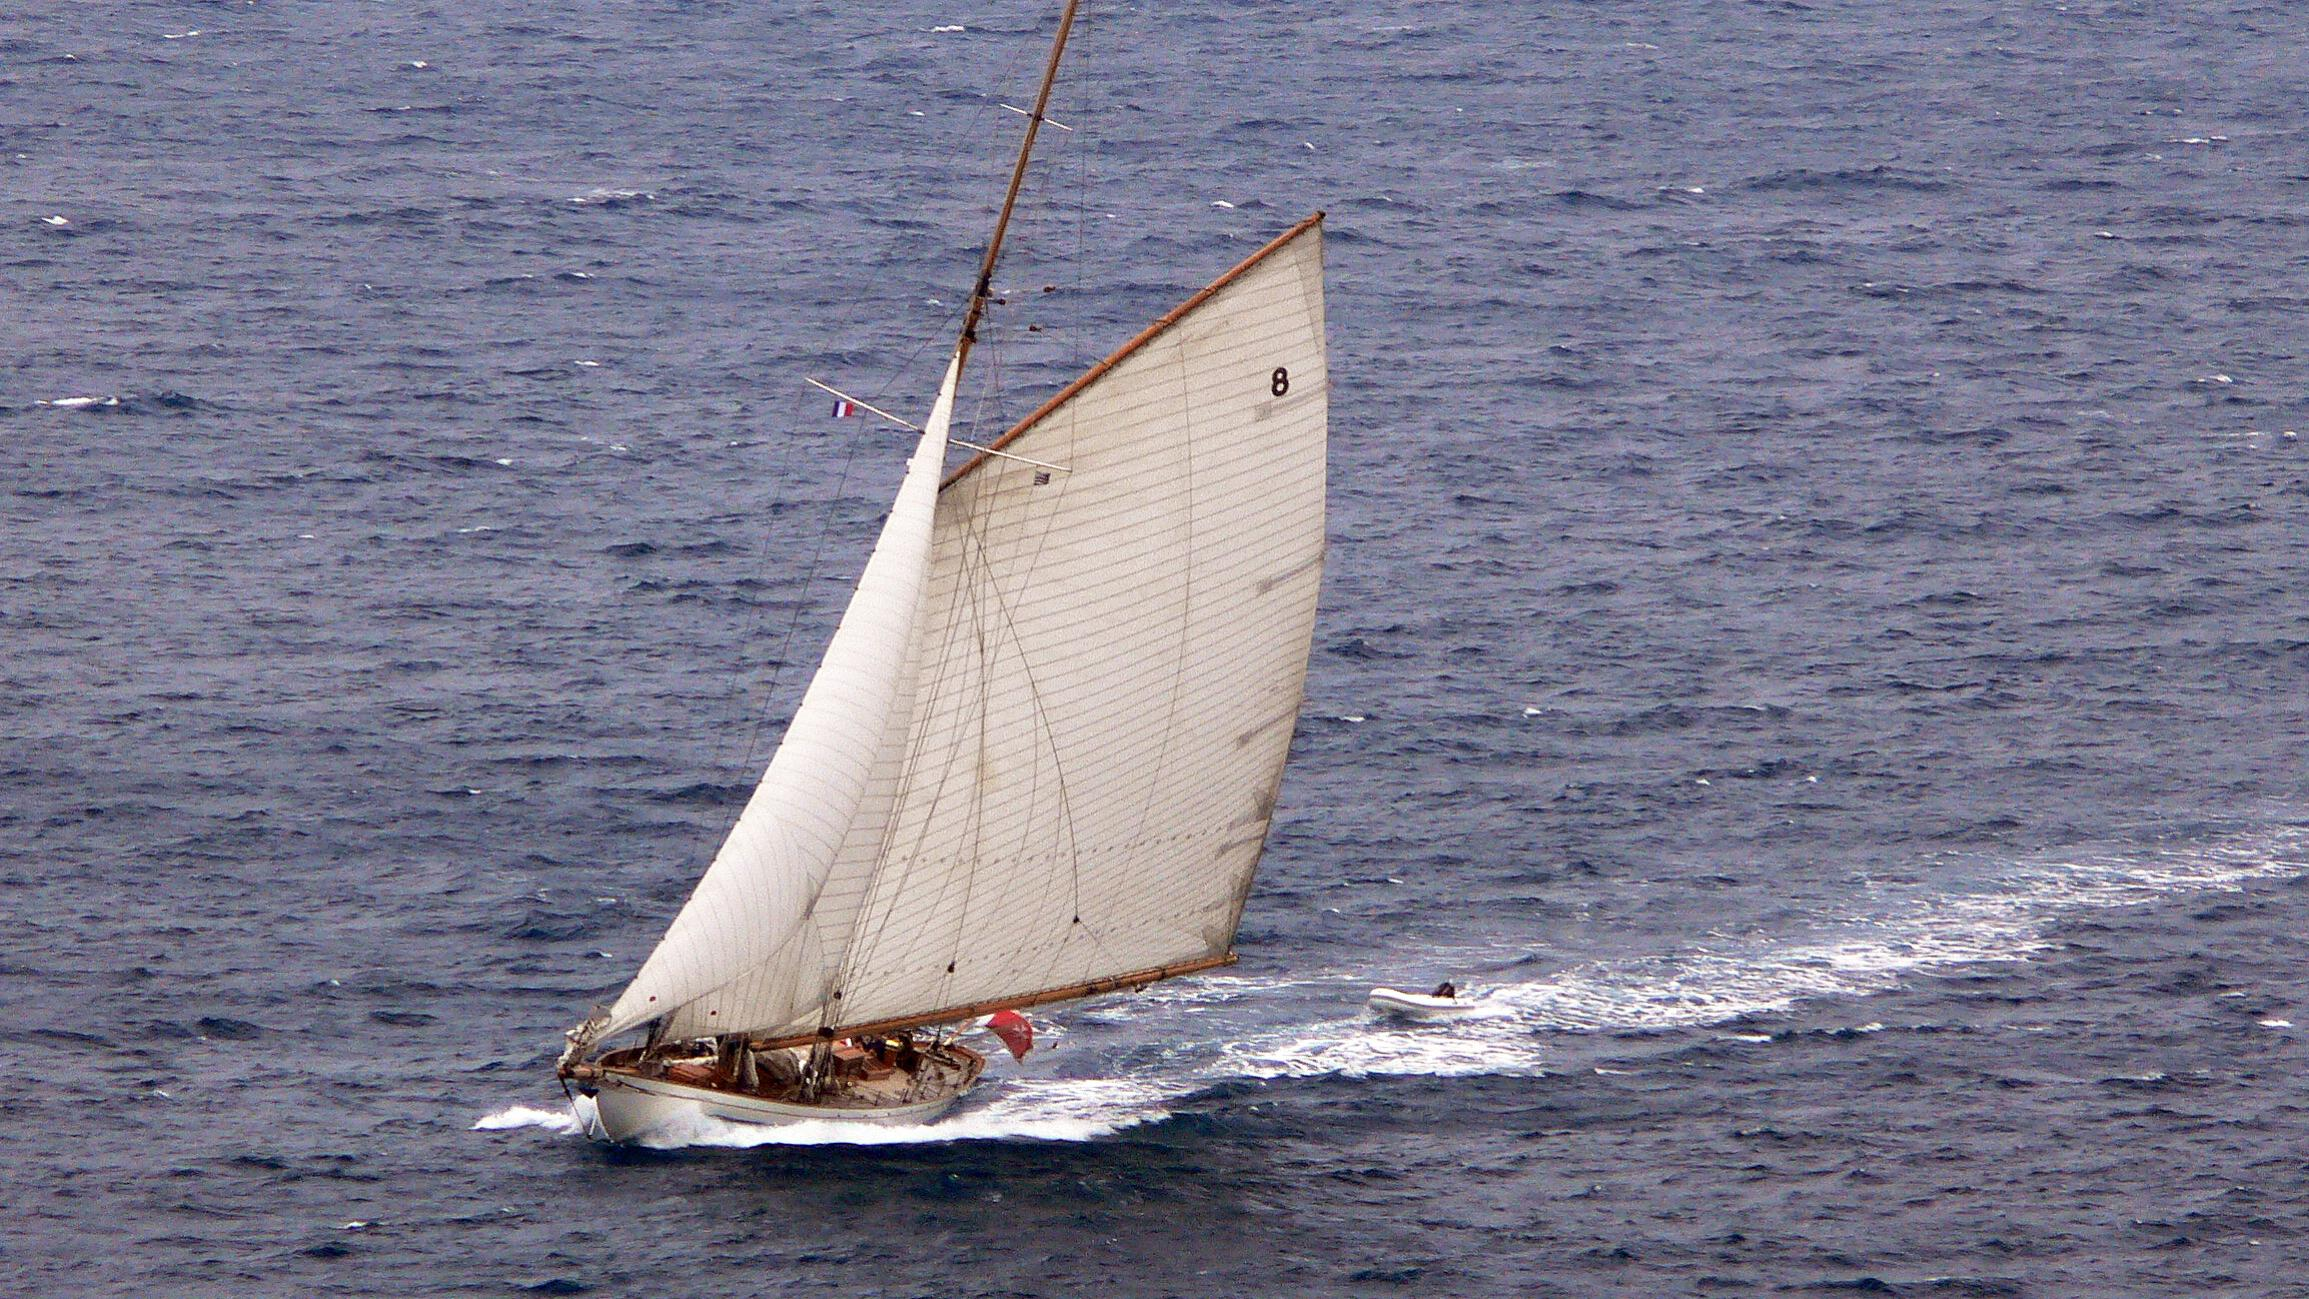 moonbeam-iv-sailing-yacht-fife-1920-32m-cruising-bow